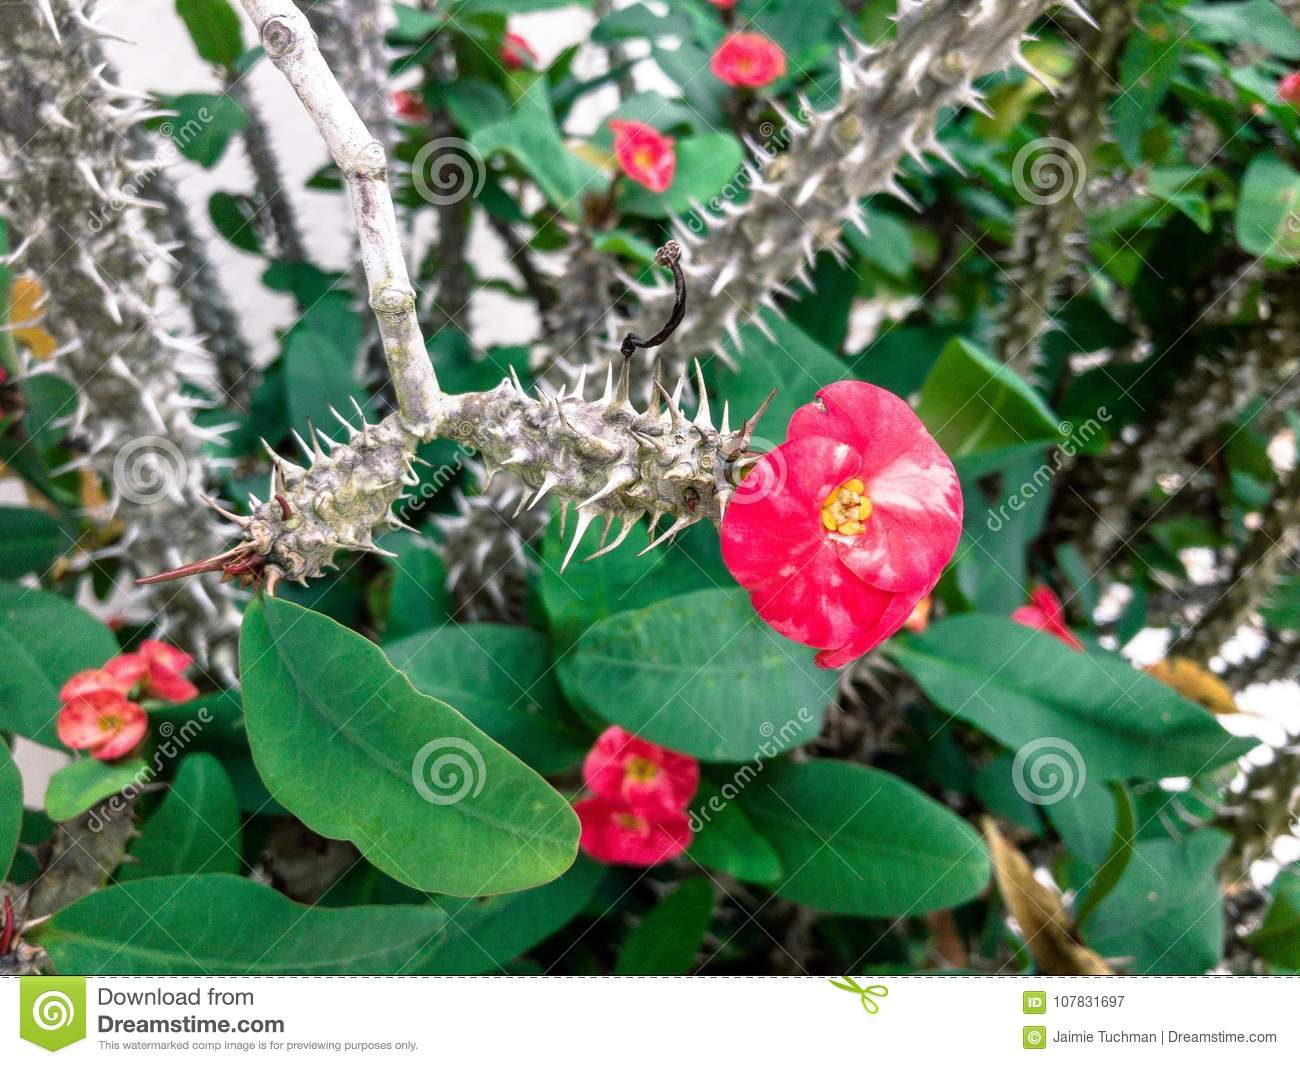 Pink Flowers On A Thorny Plant Stock Image Image Of Asiaticum